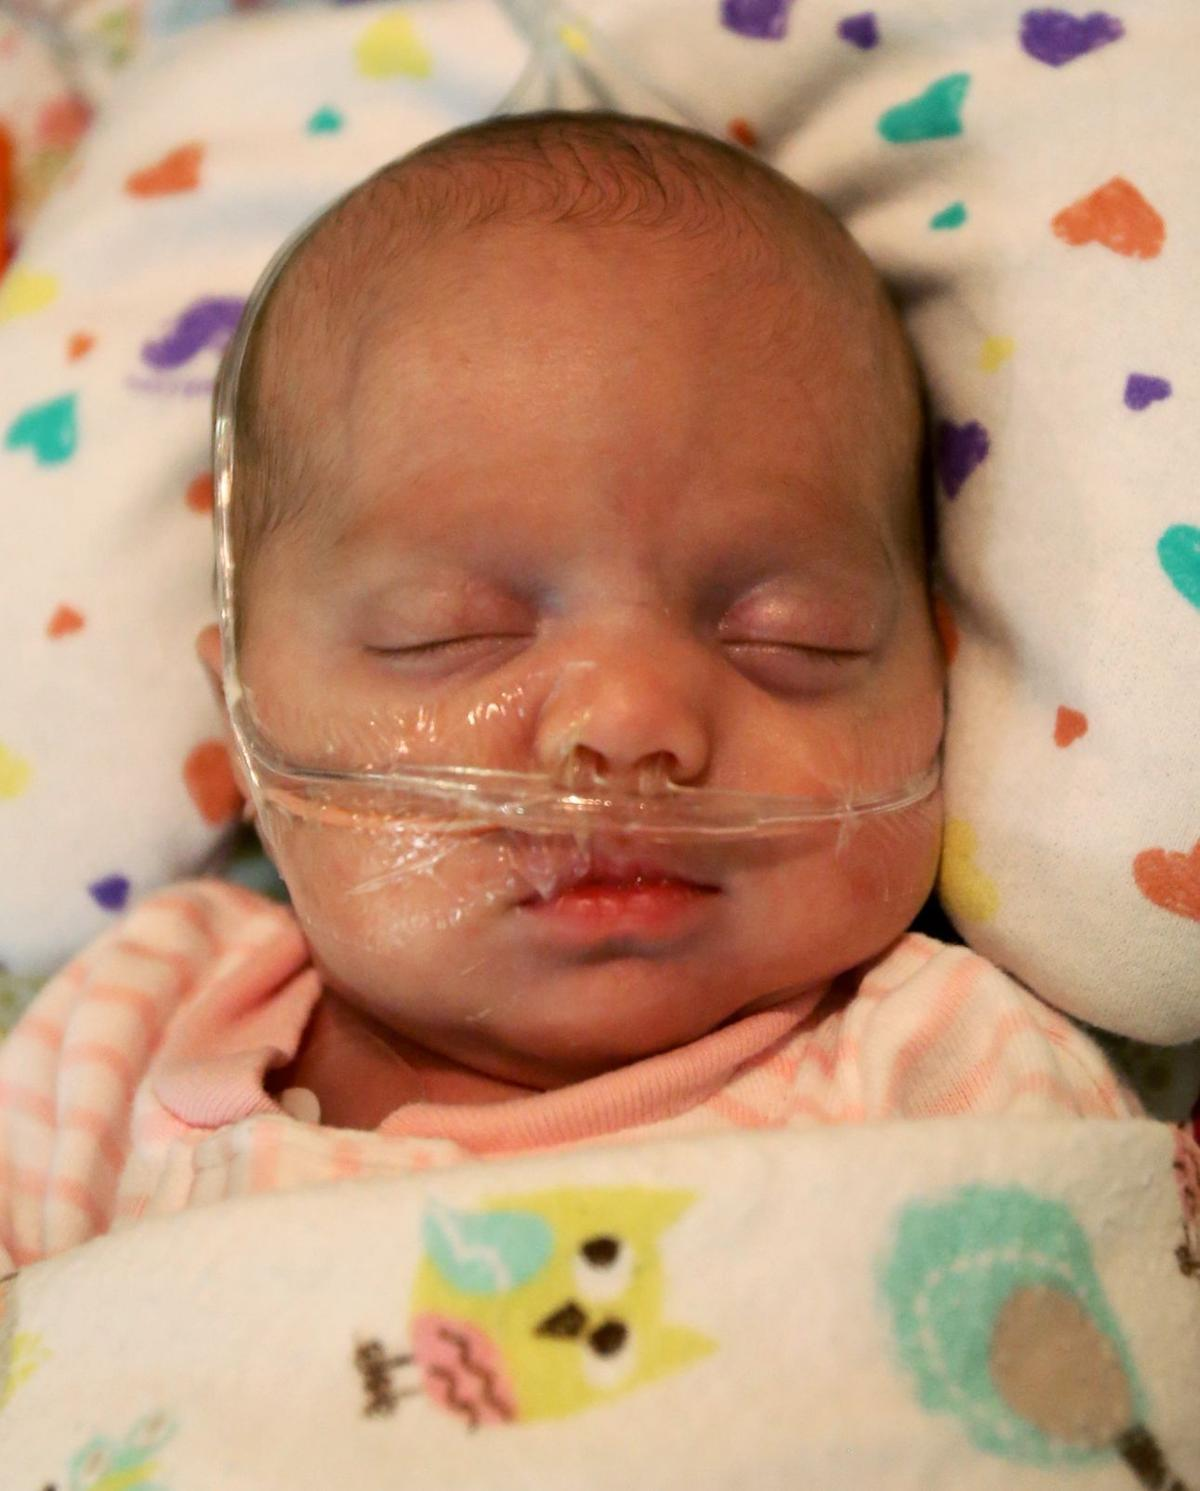 Baby girl born early at 26 weeks and less than 3 pounds ...